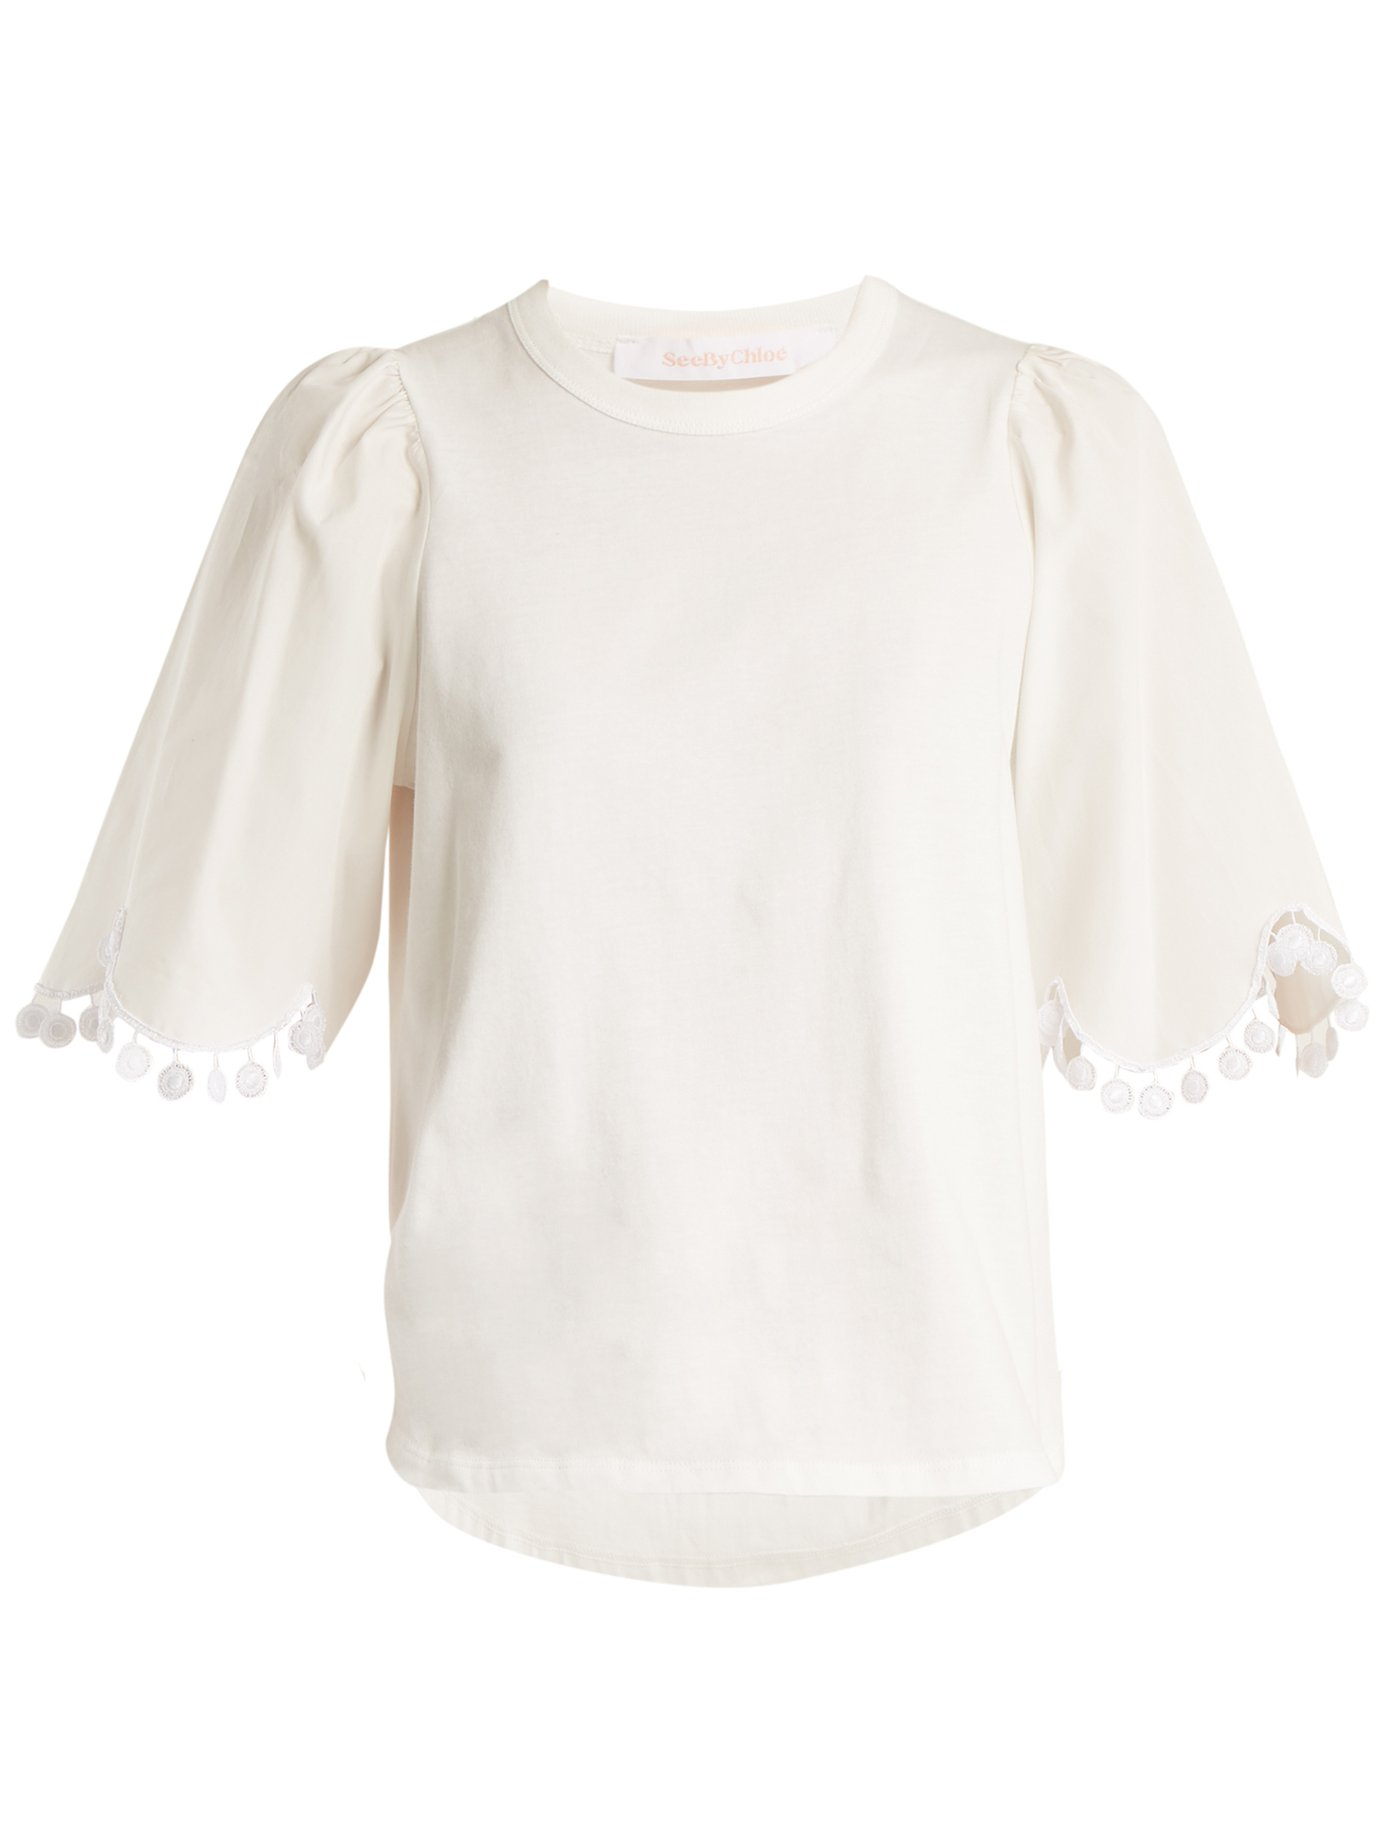 See By Chloé Lace Trimmed Short Sleeved Cotton T Shirt White